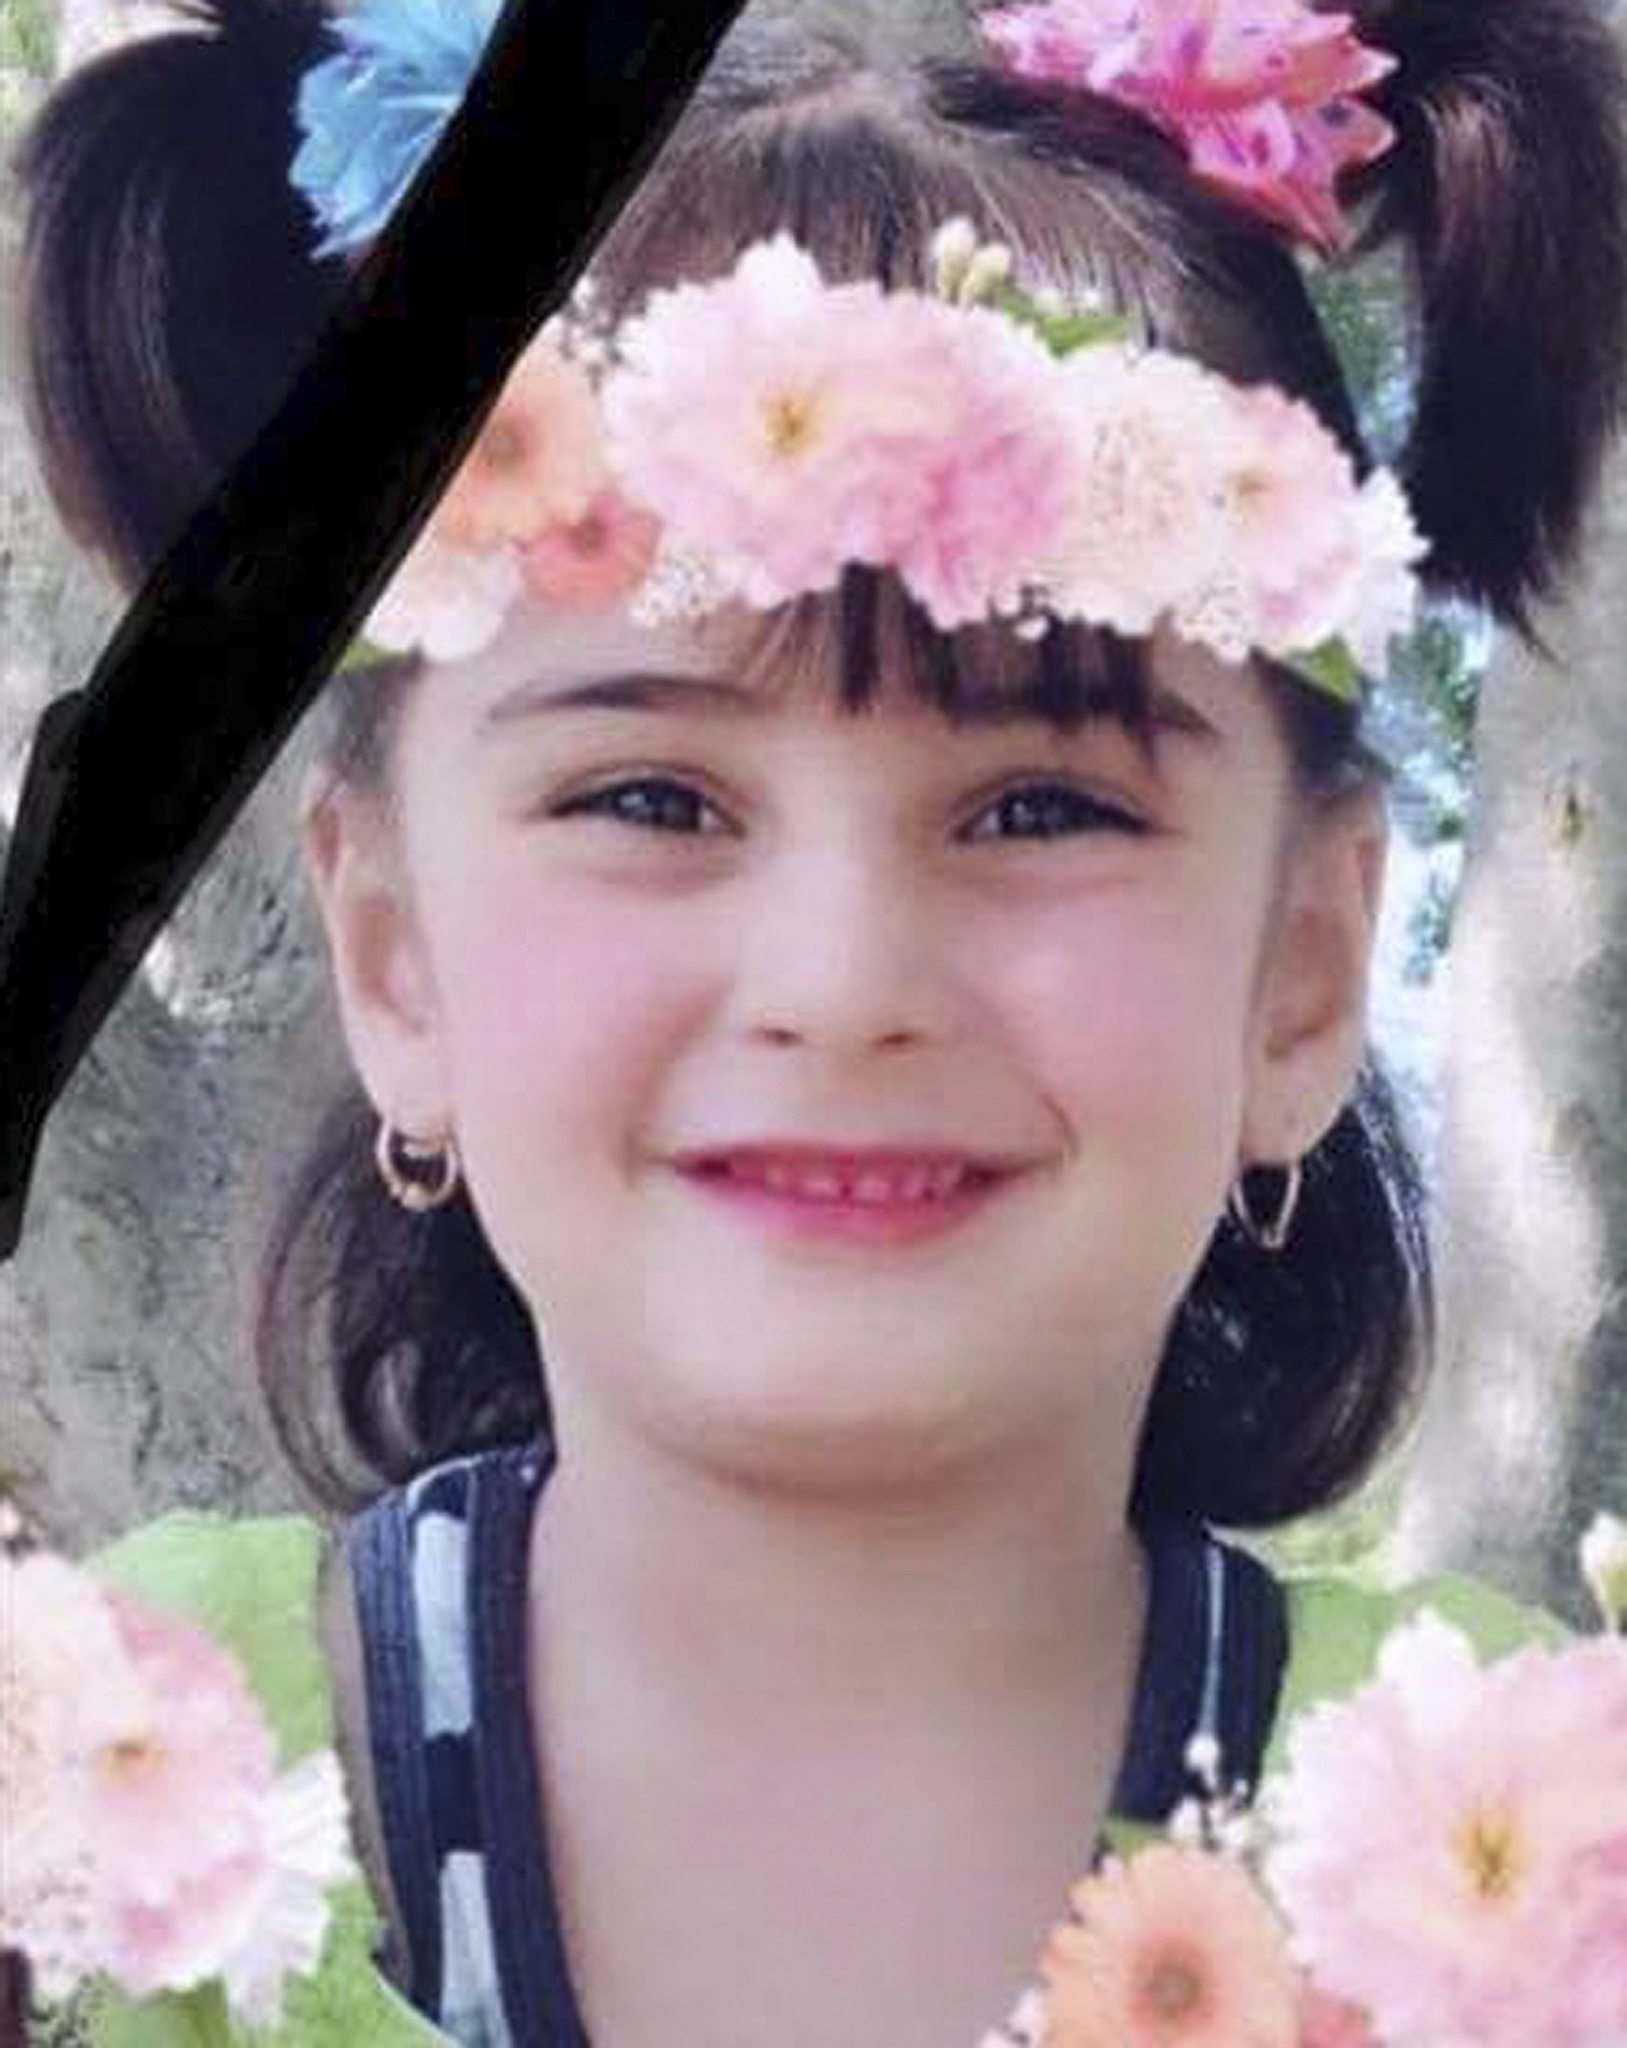 Binsaa Ahmed, 5, was killed after a two-vehicle collision on Dalhousie Drive. (Facebook photo)